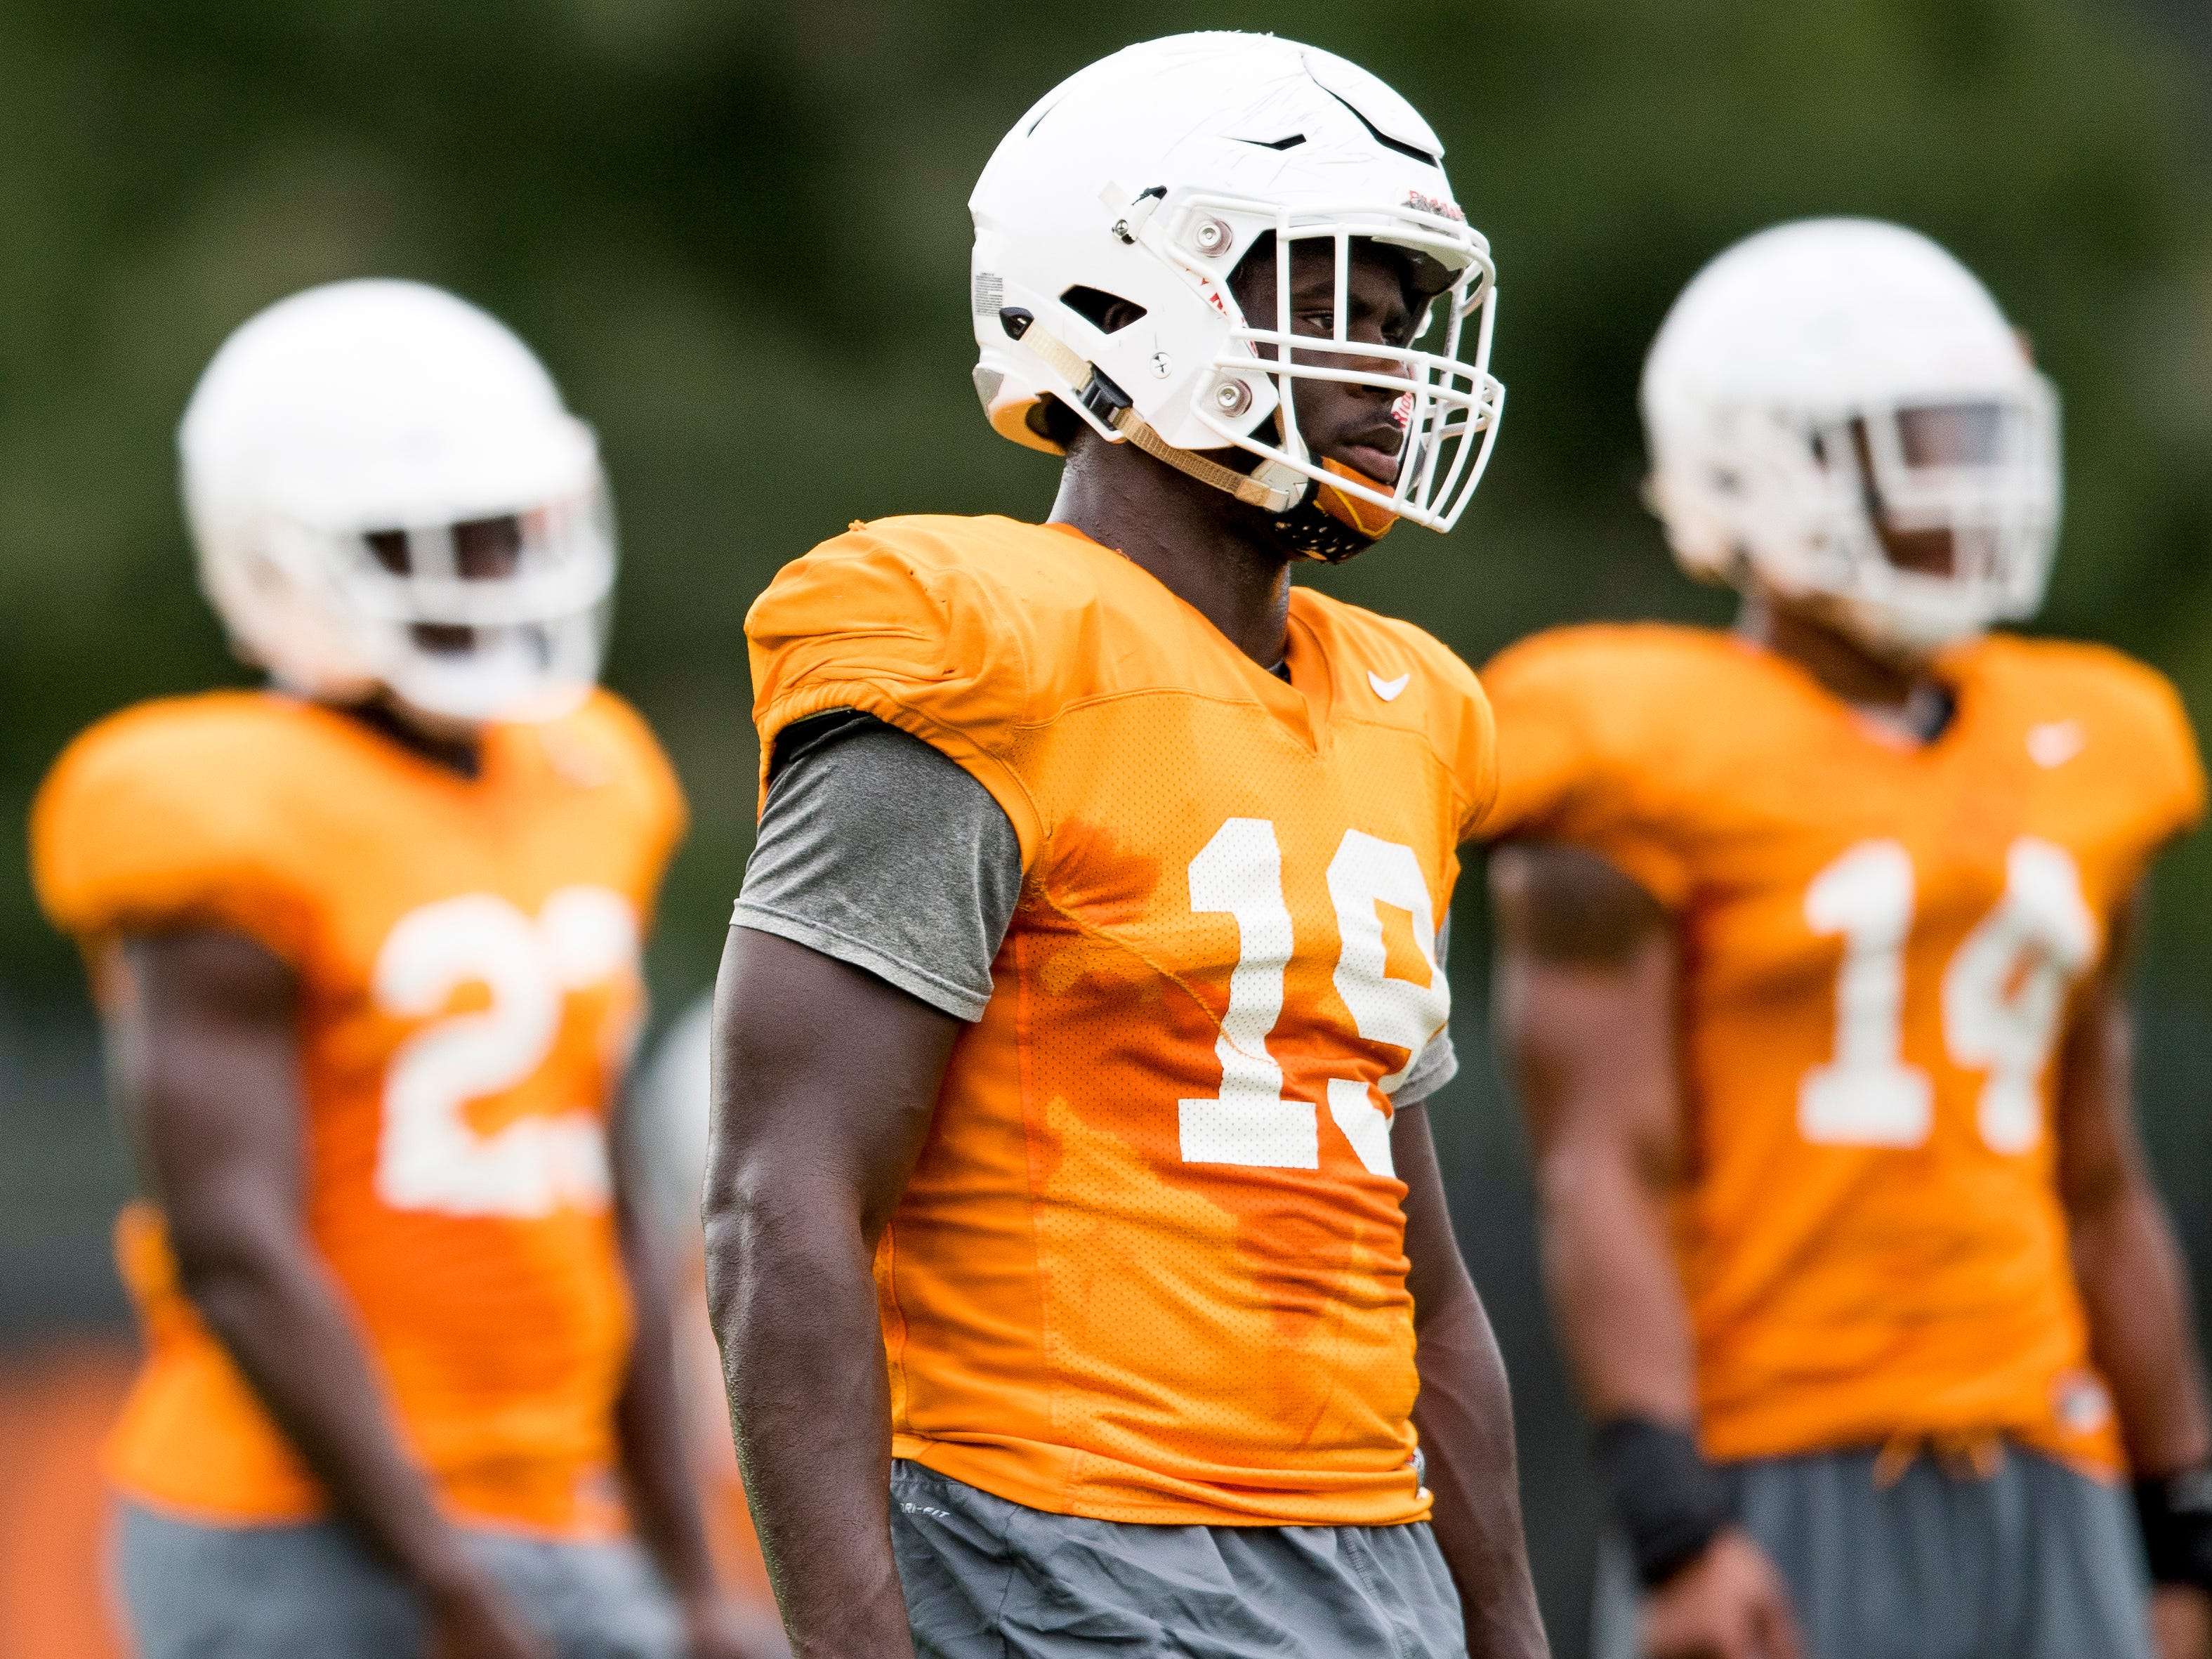 Tennessee linebacker Darrell Taylor (19) during Tennessee football's afternoon practice on Wednesday, October 10, 2018.